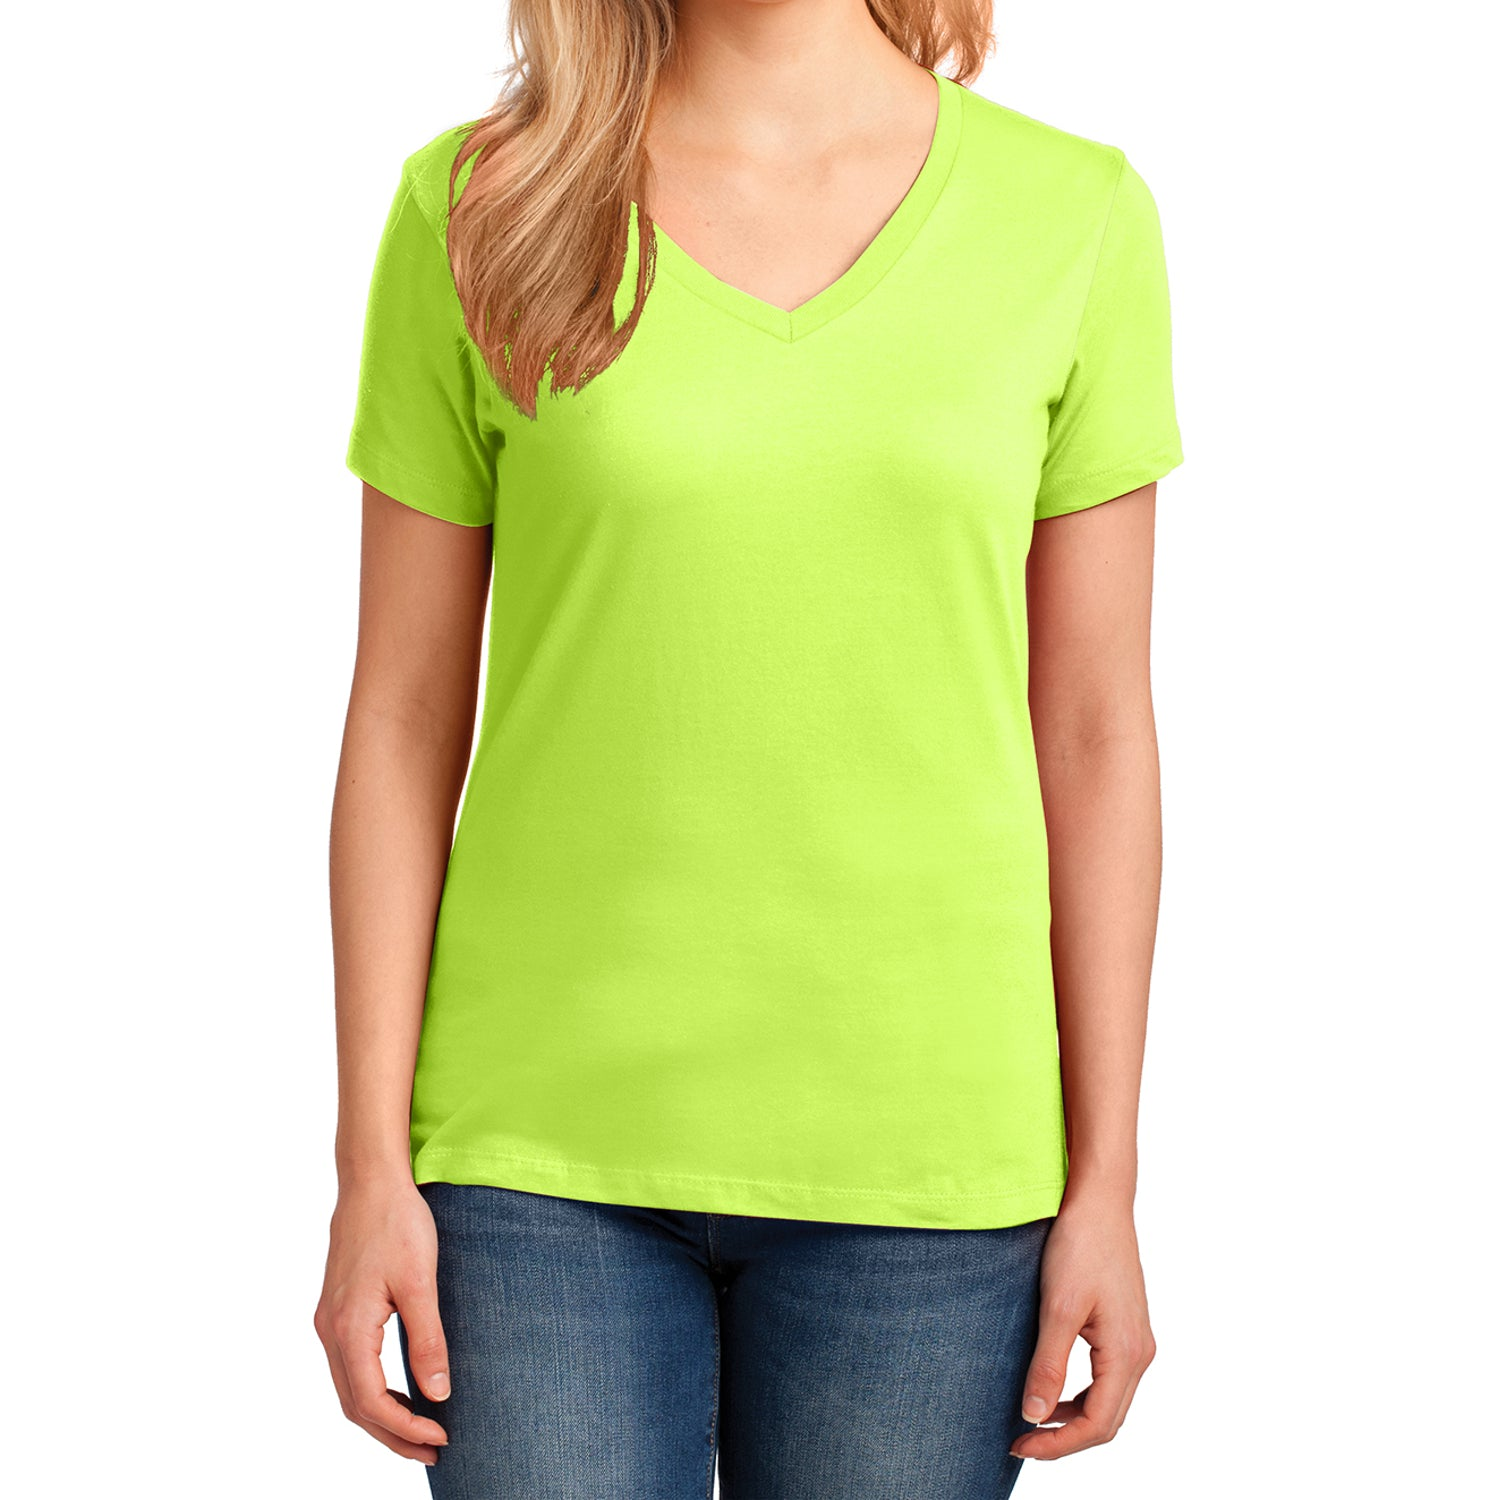 Women's Core Cotton V-Neck Tee - Neon Yellow - Front